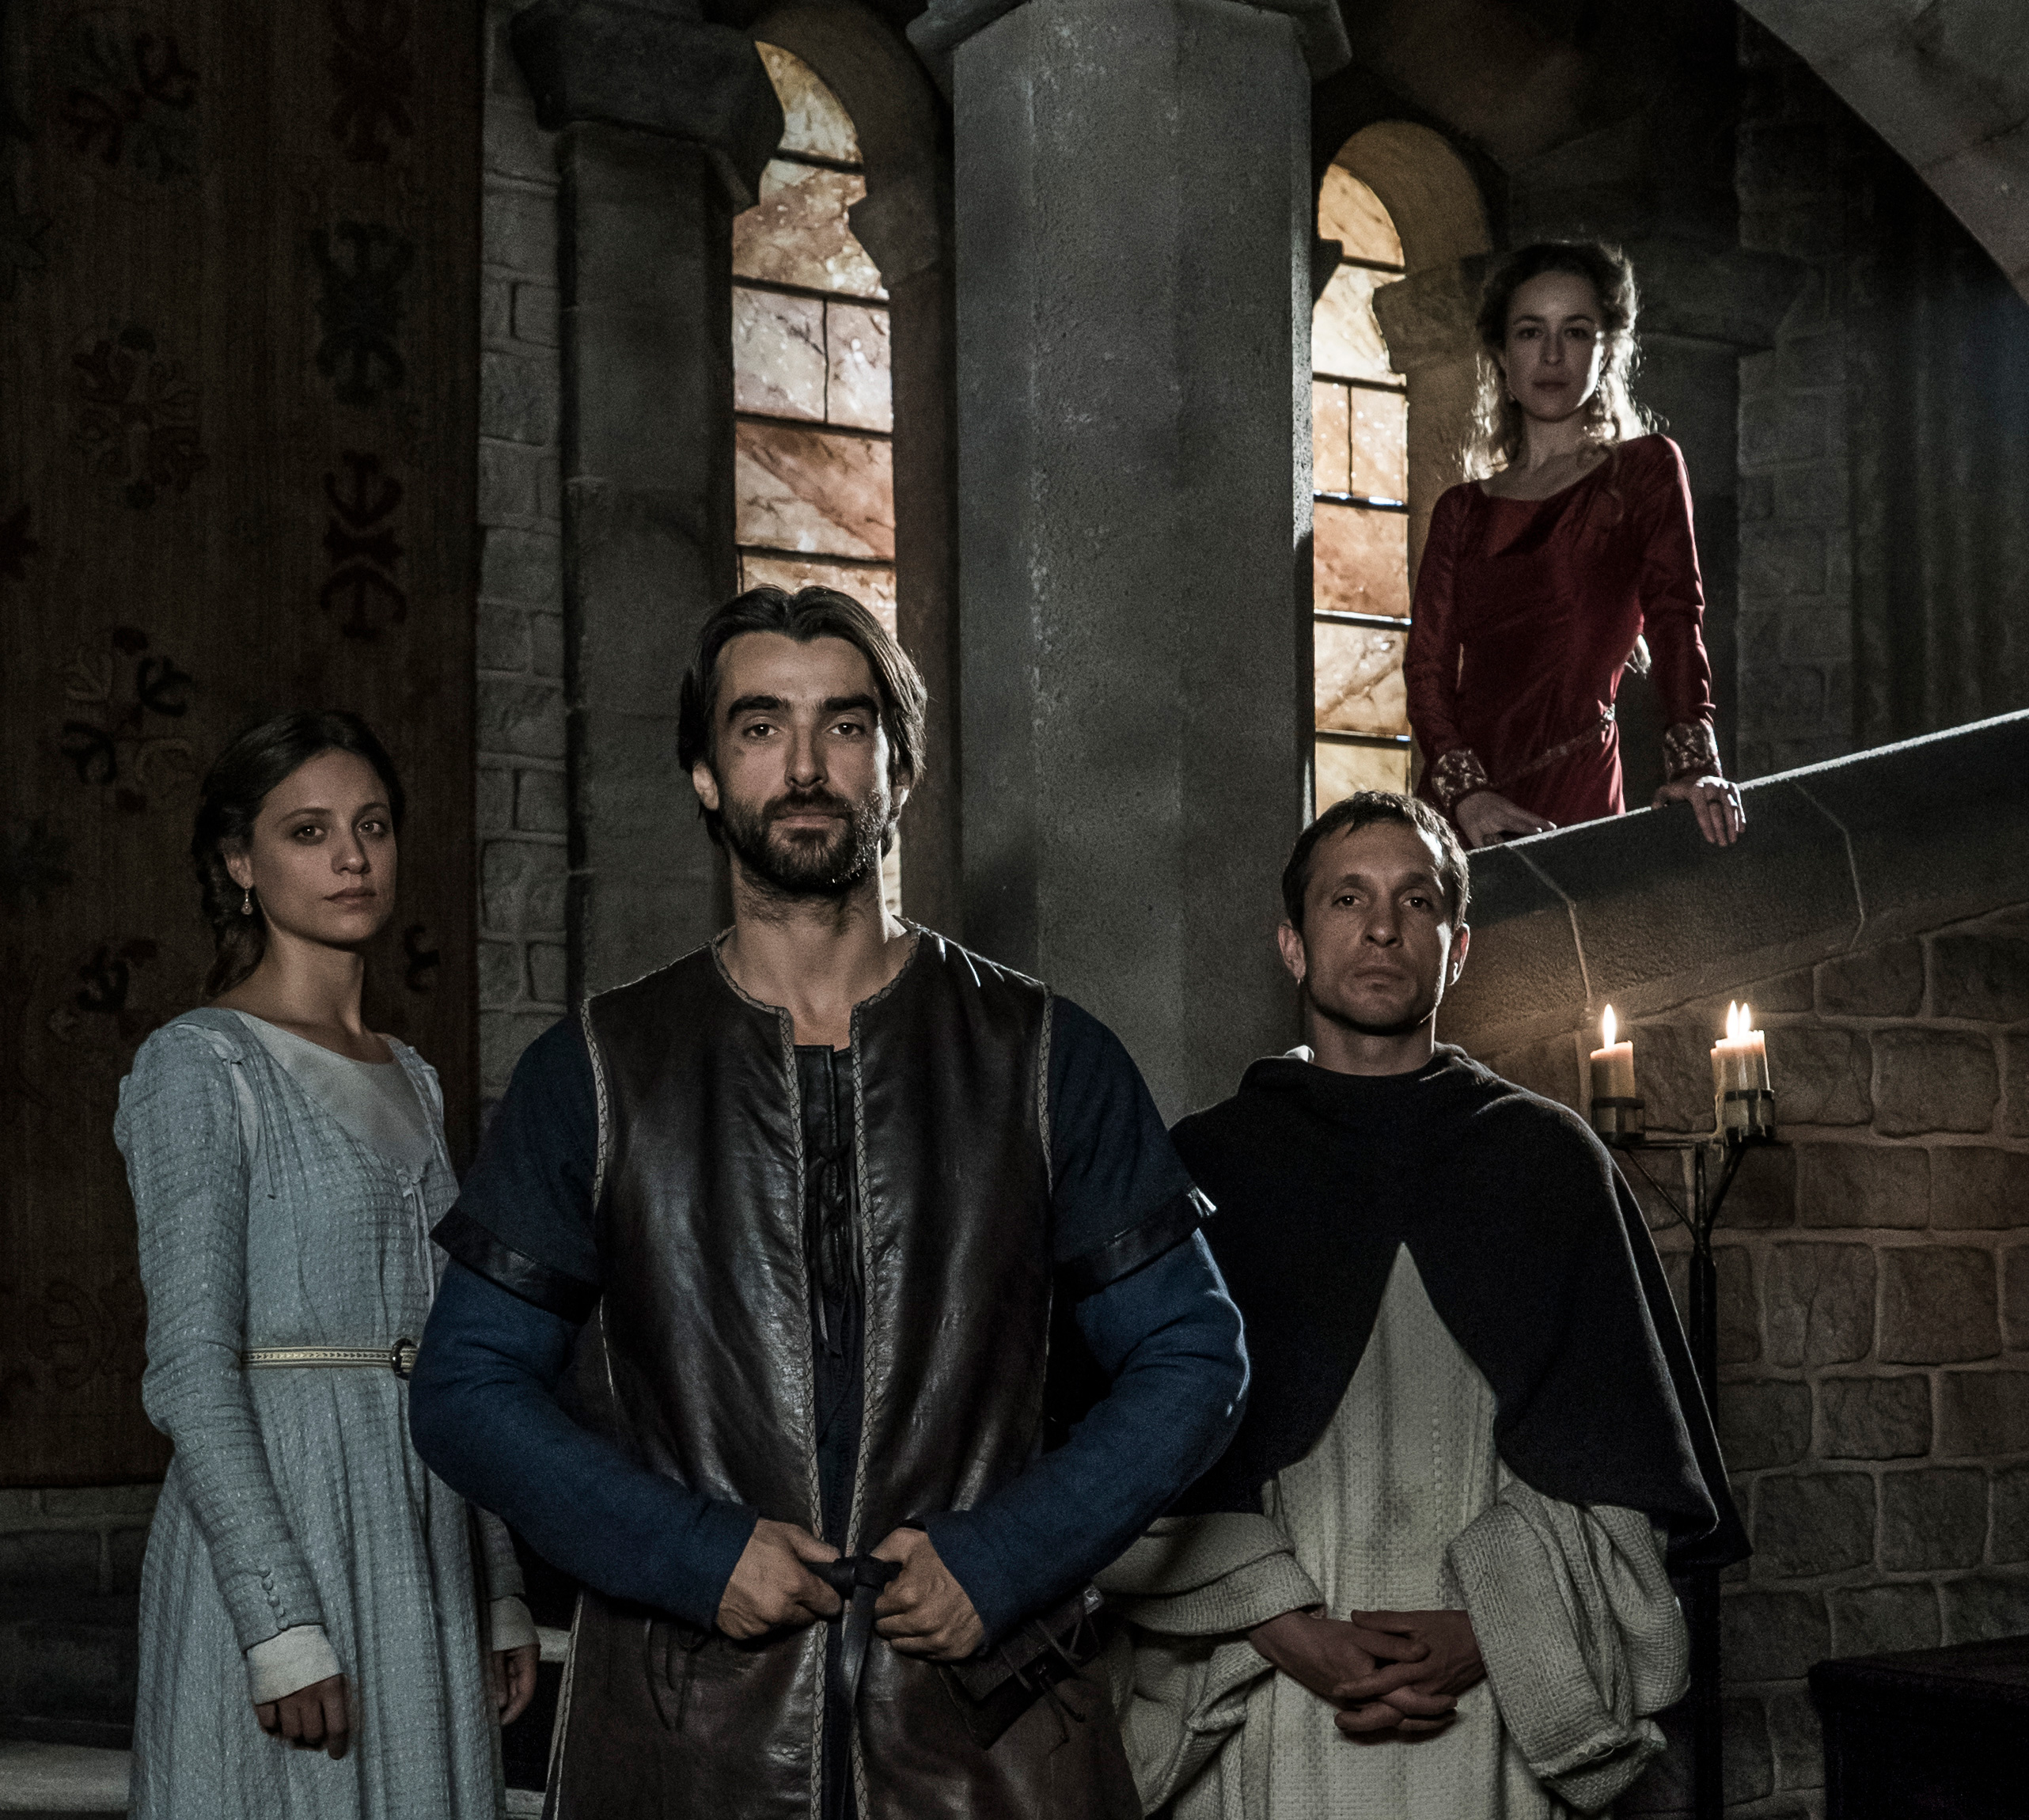 Mediaset Italy acquires Netflix and Antena 3 drama 'Cathedral Of The Sea'